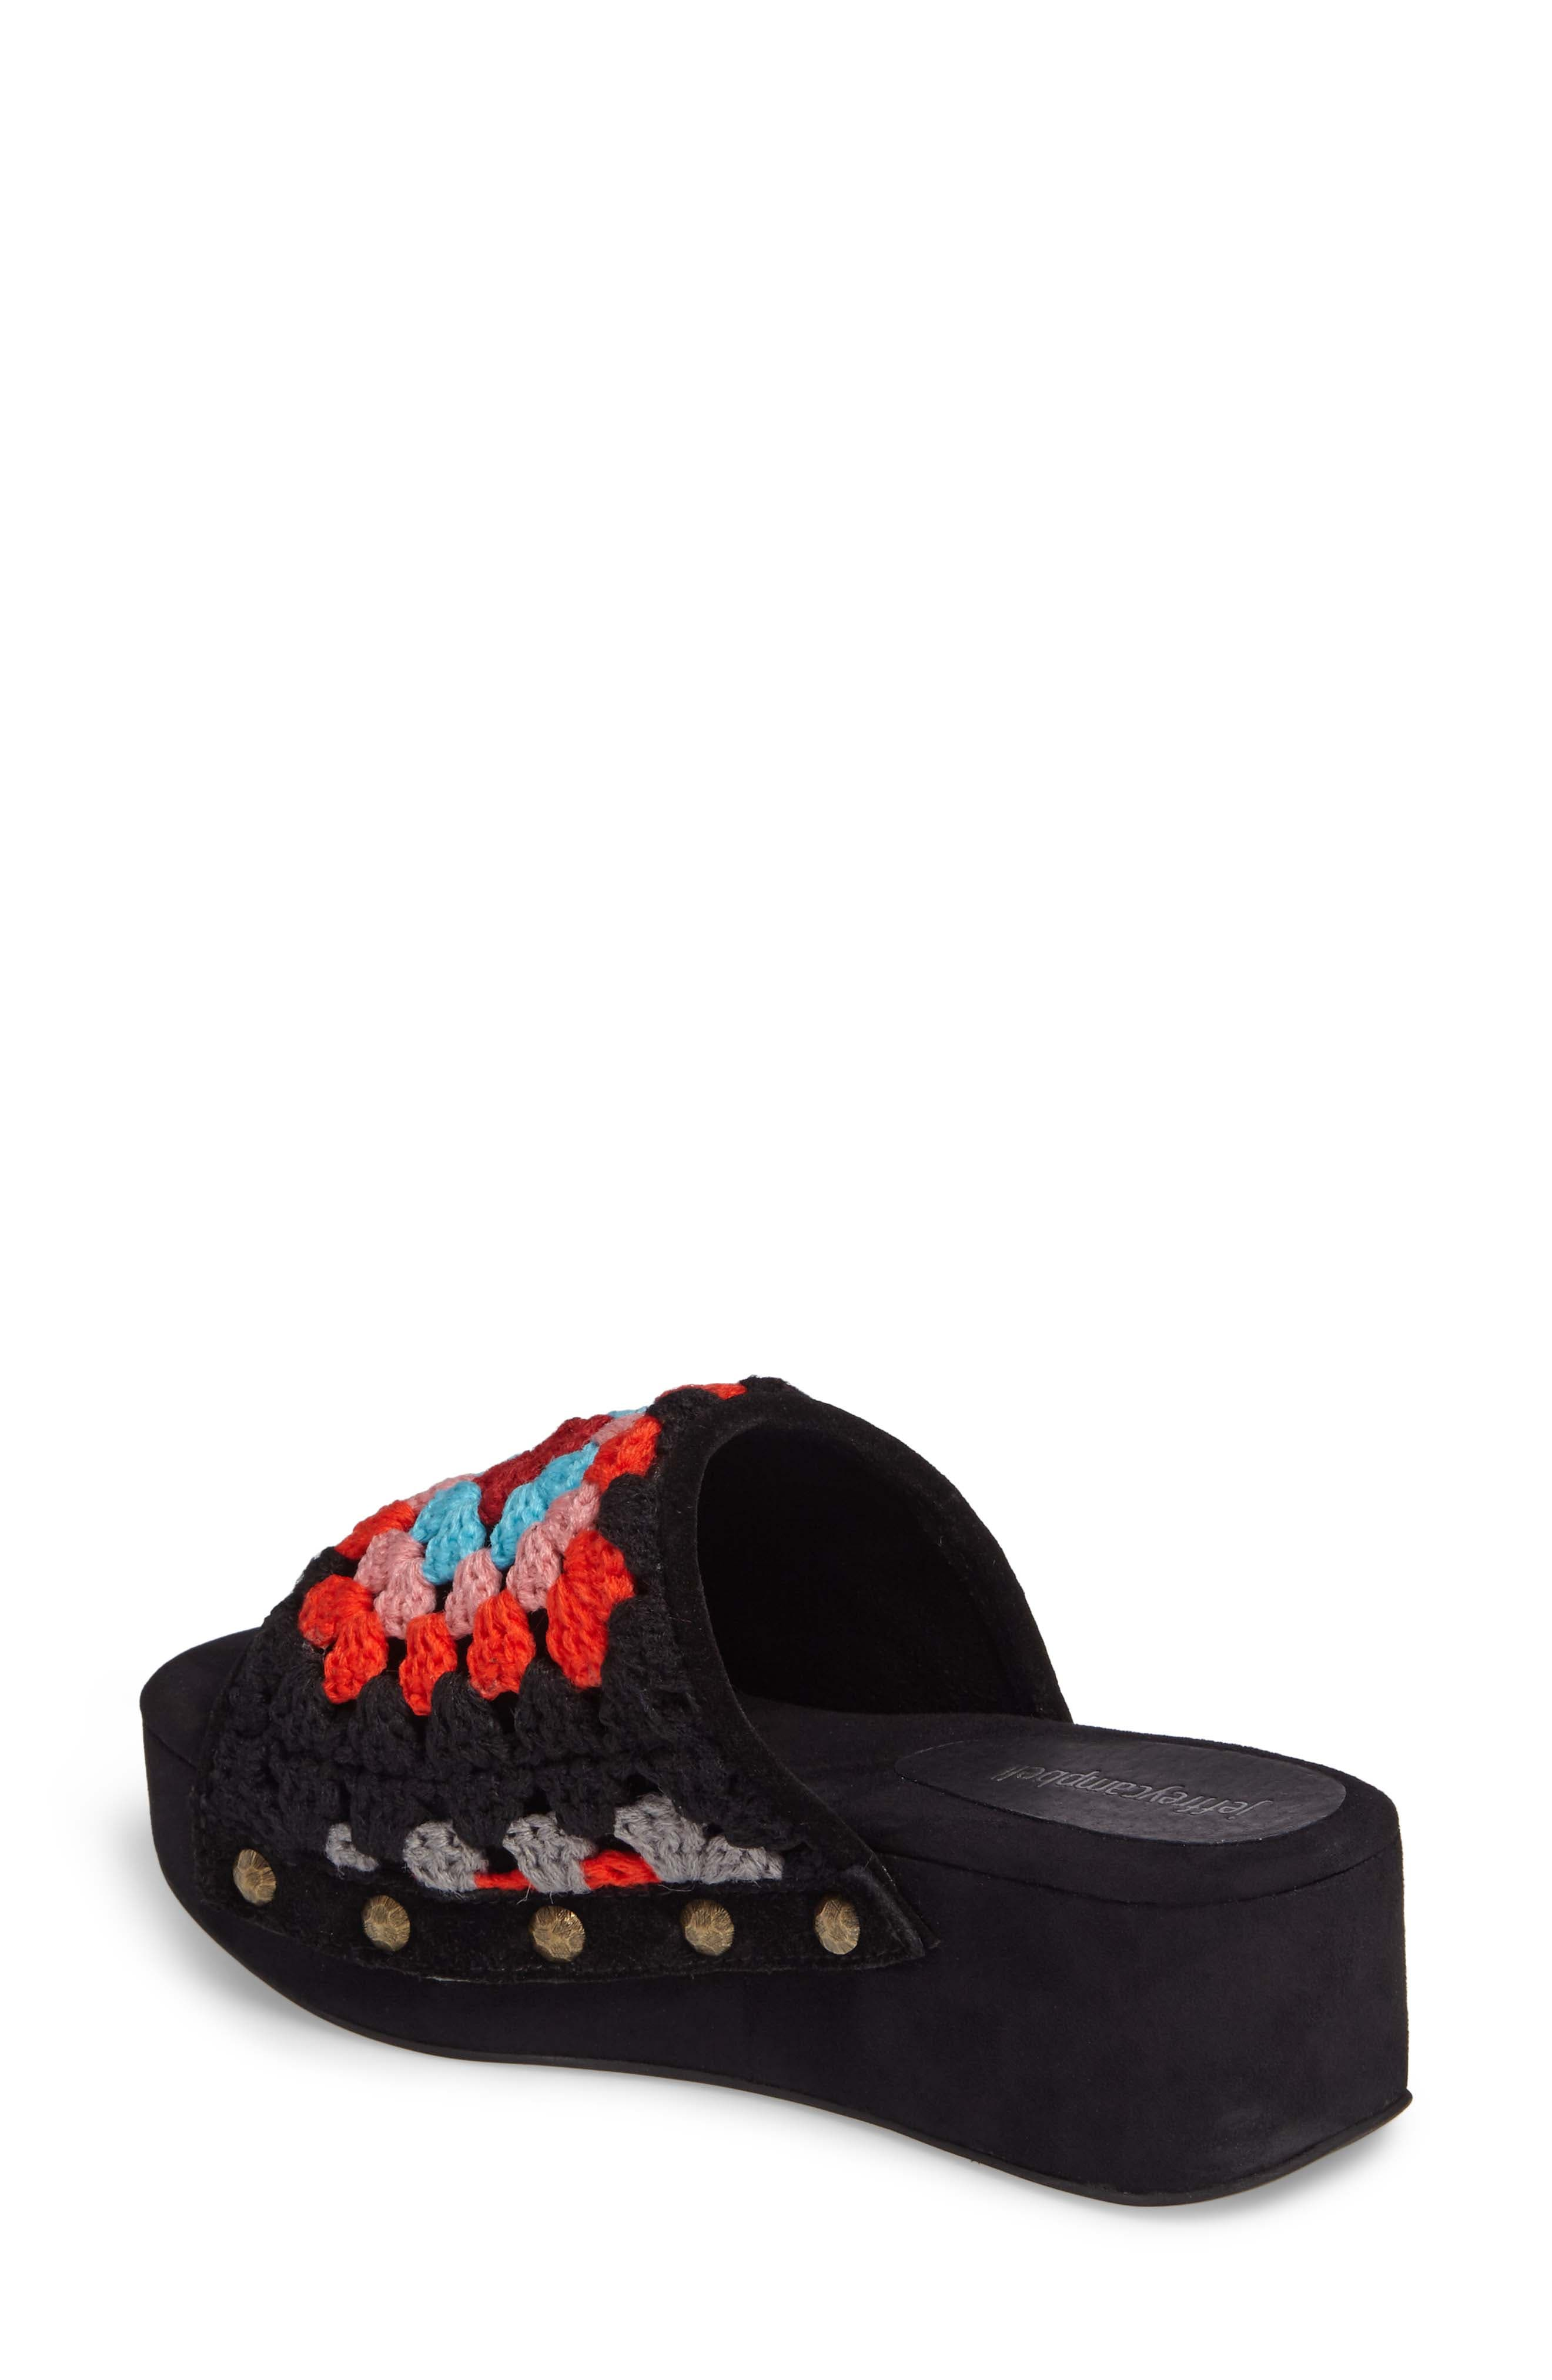 Nonna Crocheted Platform Slide Sandal,                             Alternate thumbnail 2, color,                             Black Suede Multi